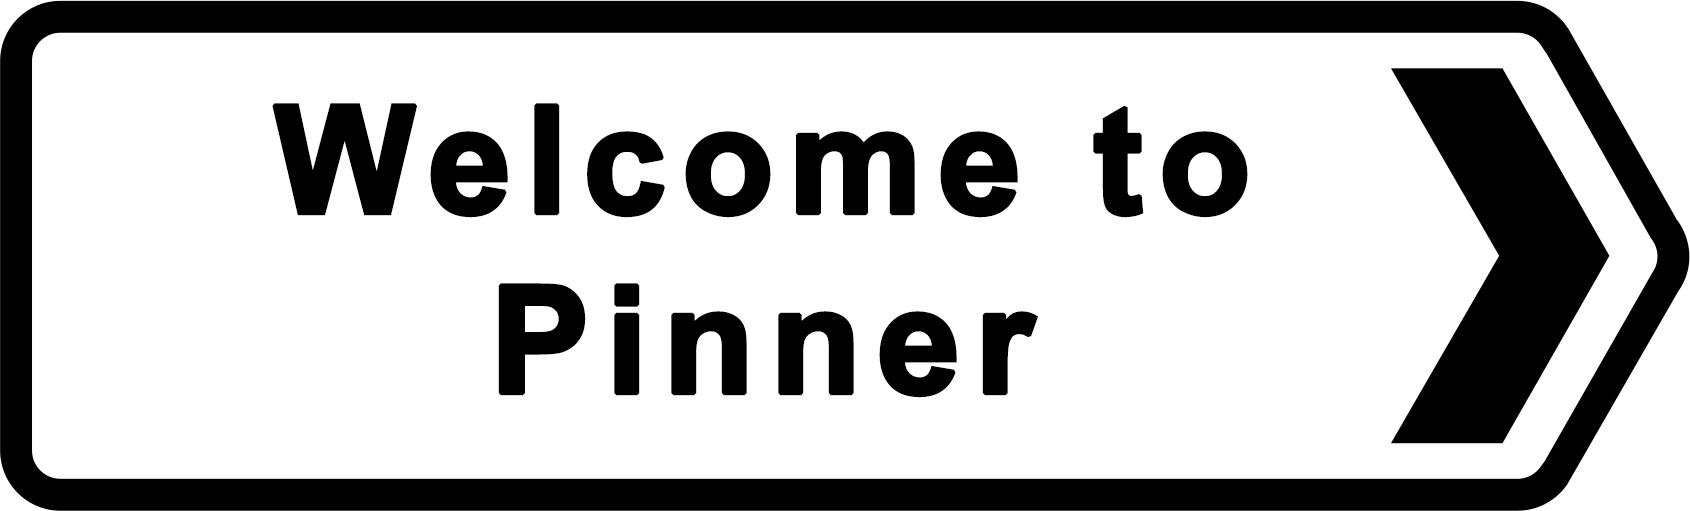 Welcome to Pinner - Cheap Driving Schools Lessons in Pinner, HA5, London borough of Harrow, Greater London